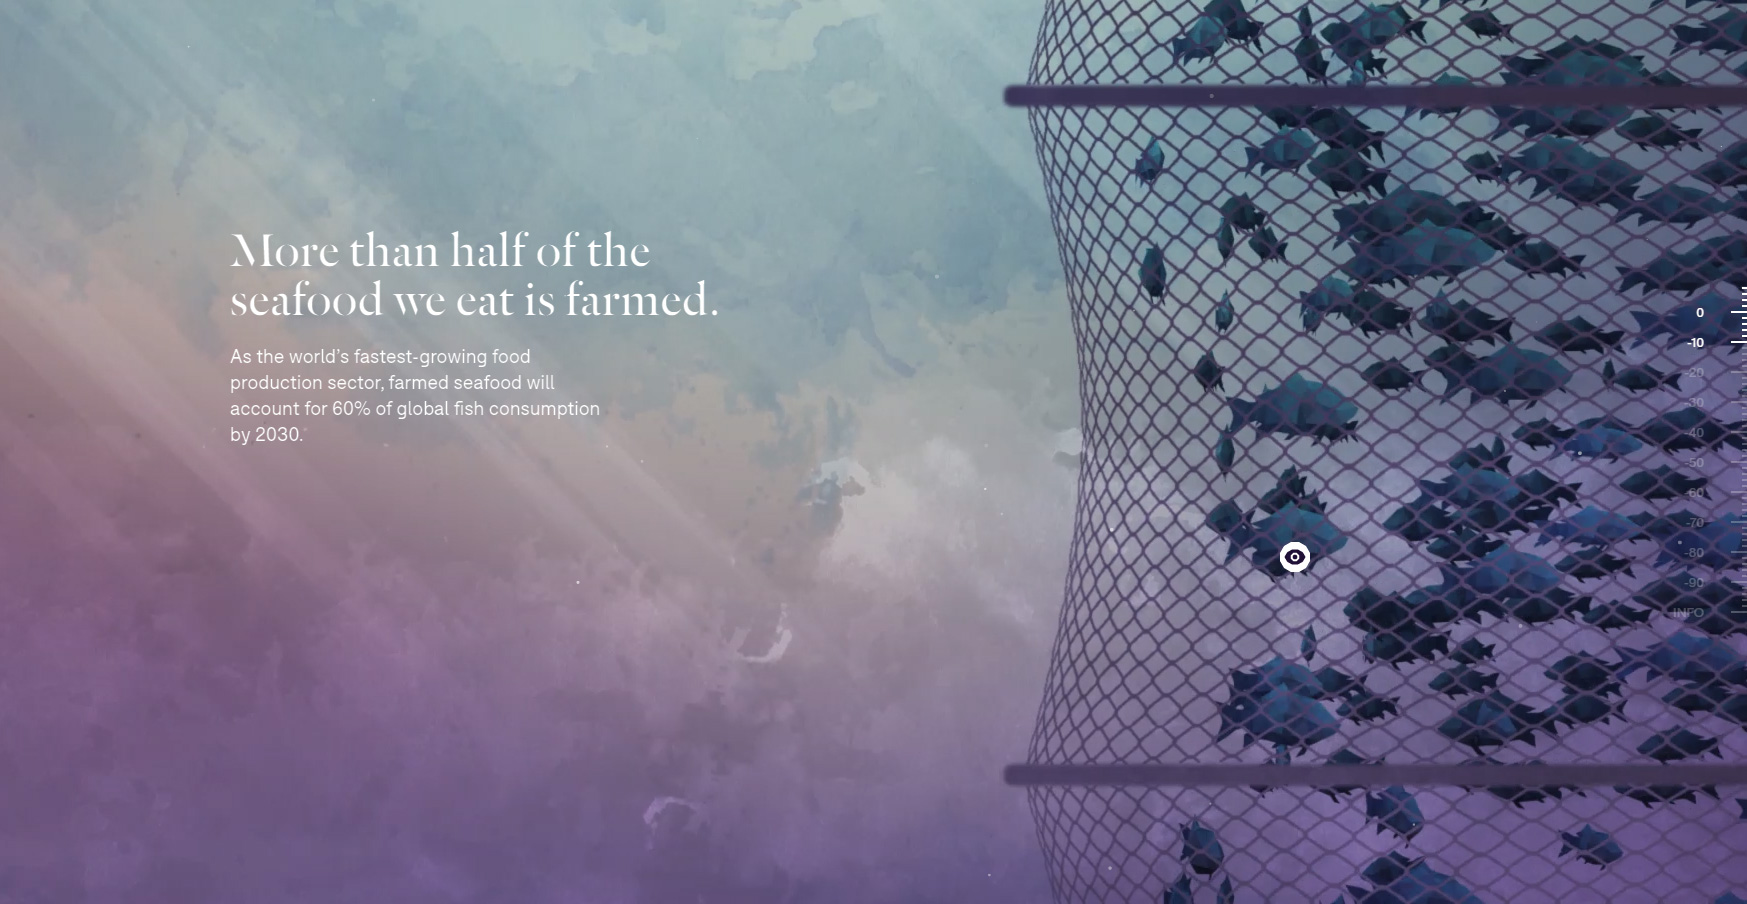 Fishing the Feed - Website of the Day